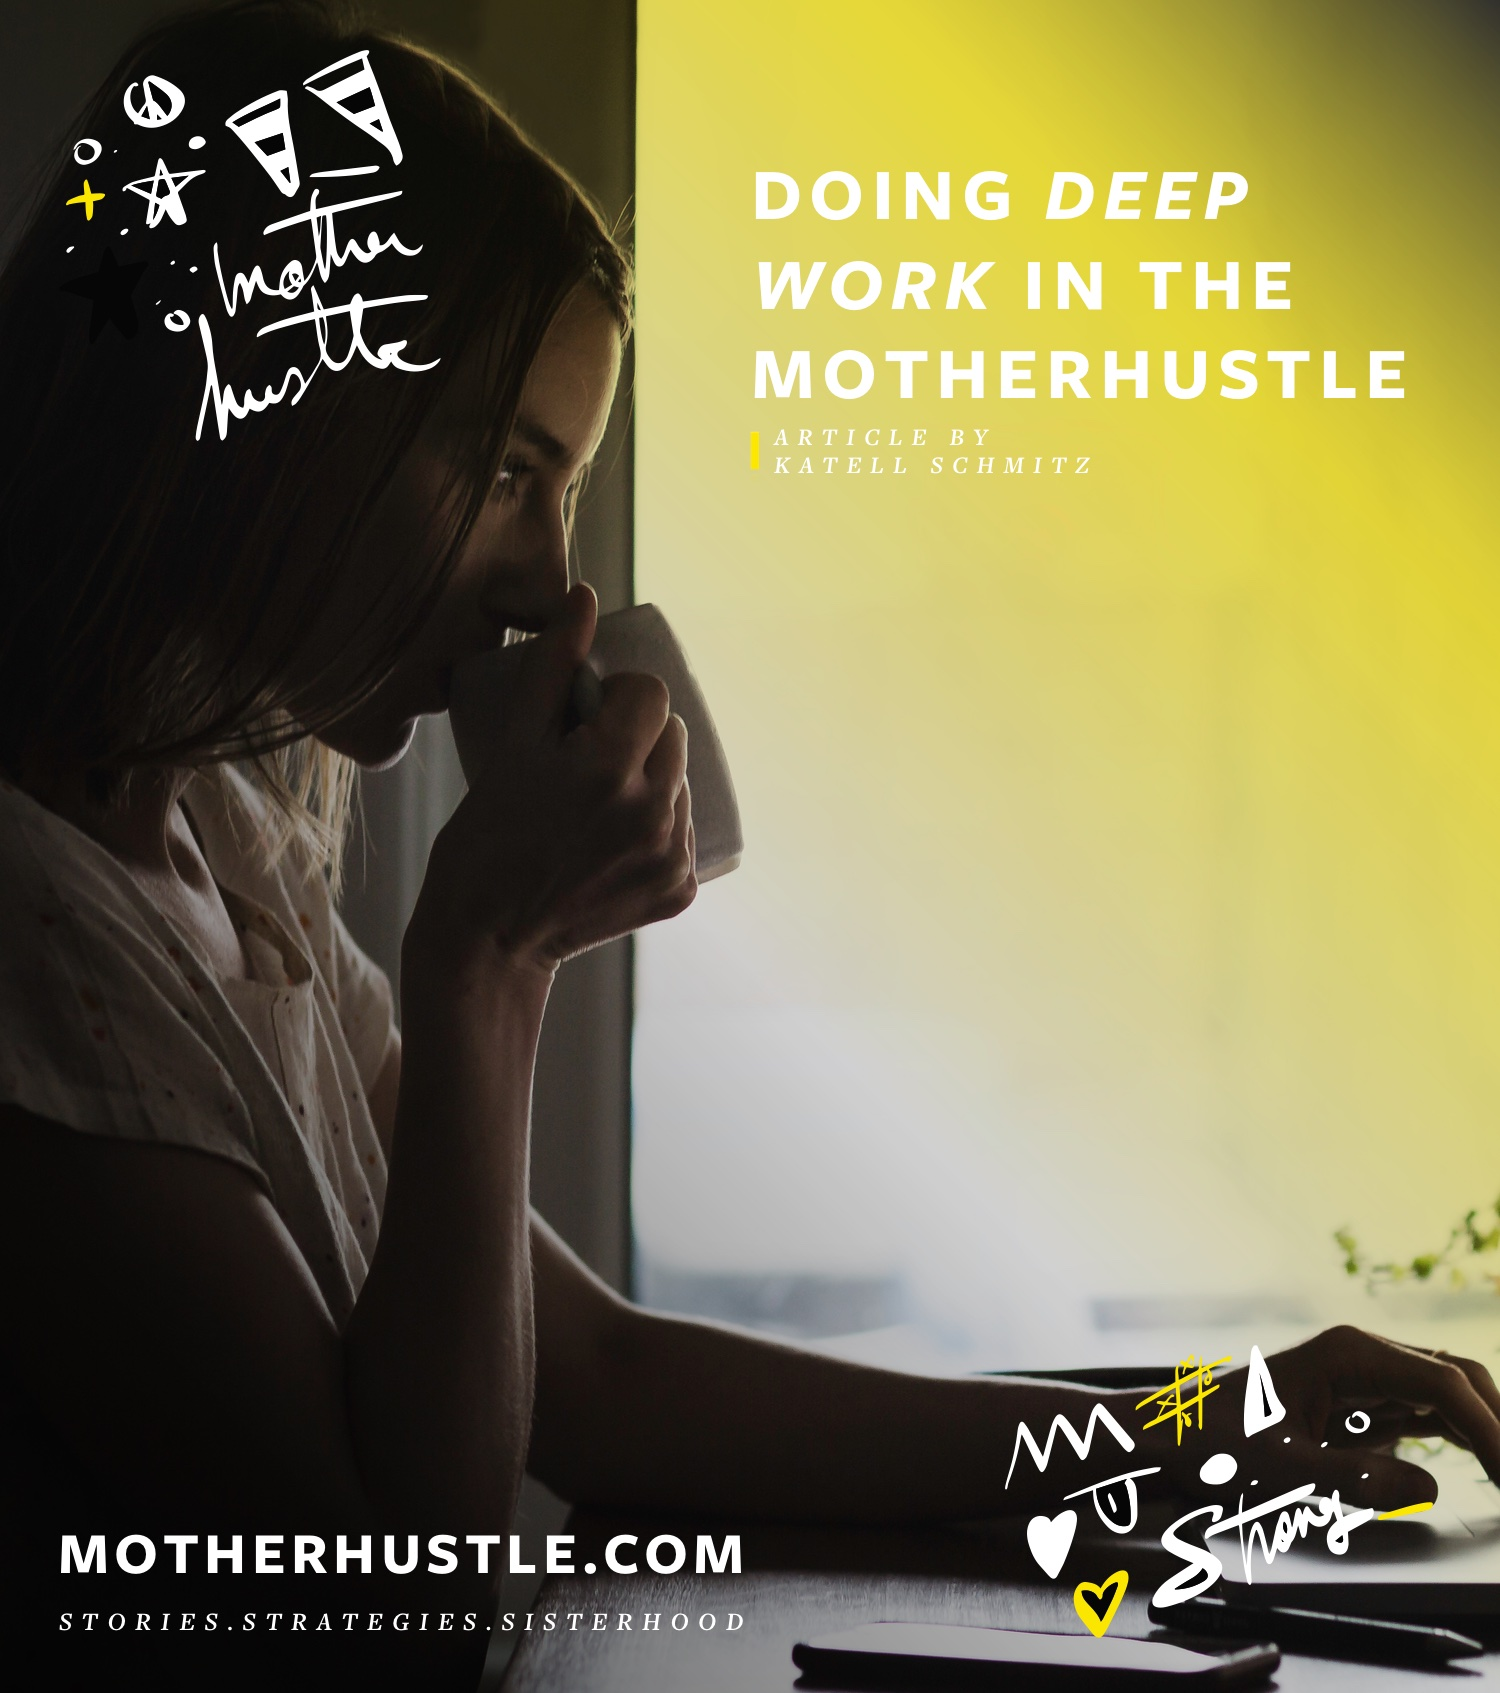 Doing Deep Work in the MotherHustle - By Katell Schmitz